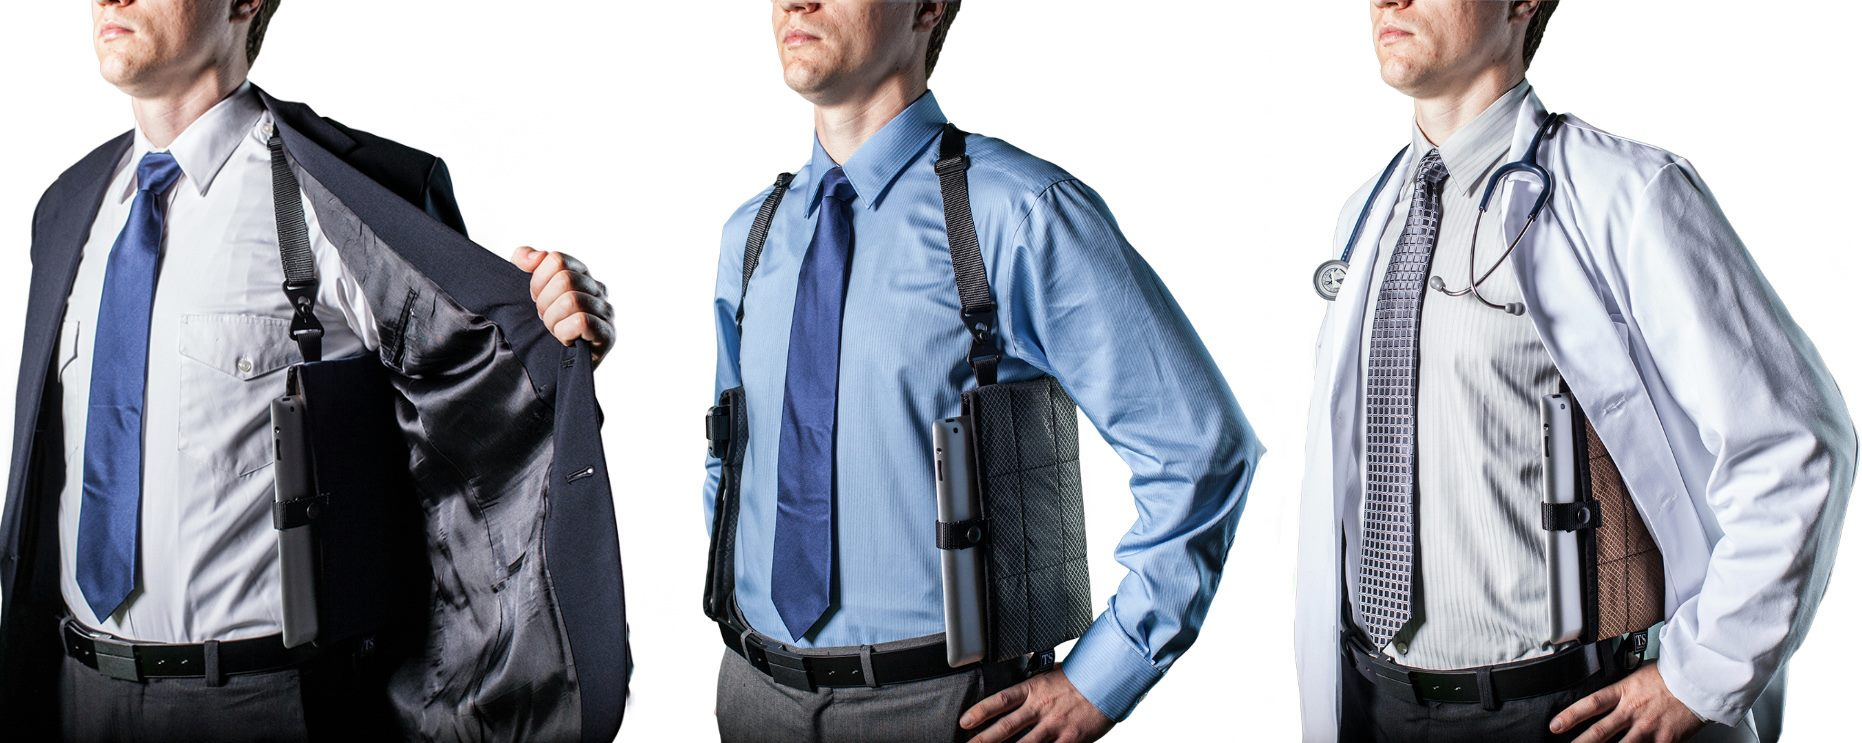 TechSling Geek Holster Review